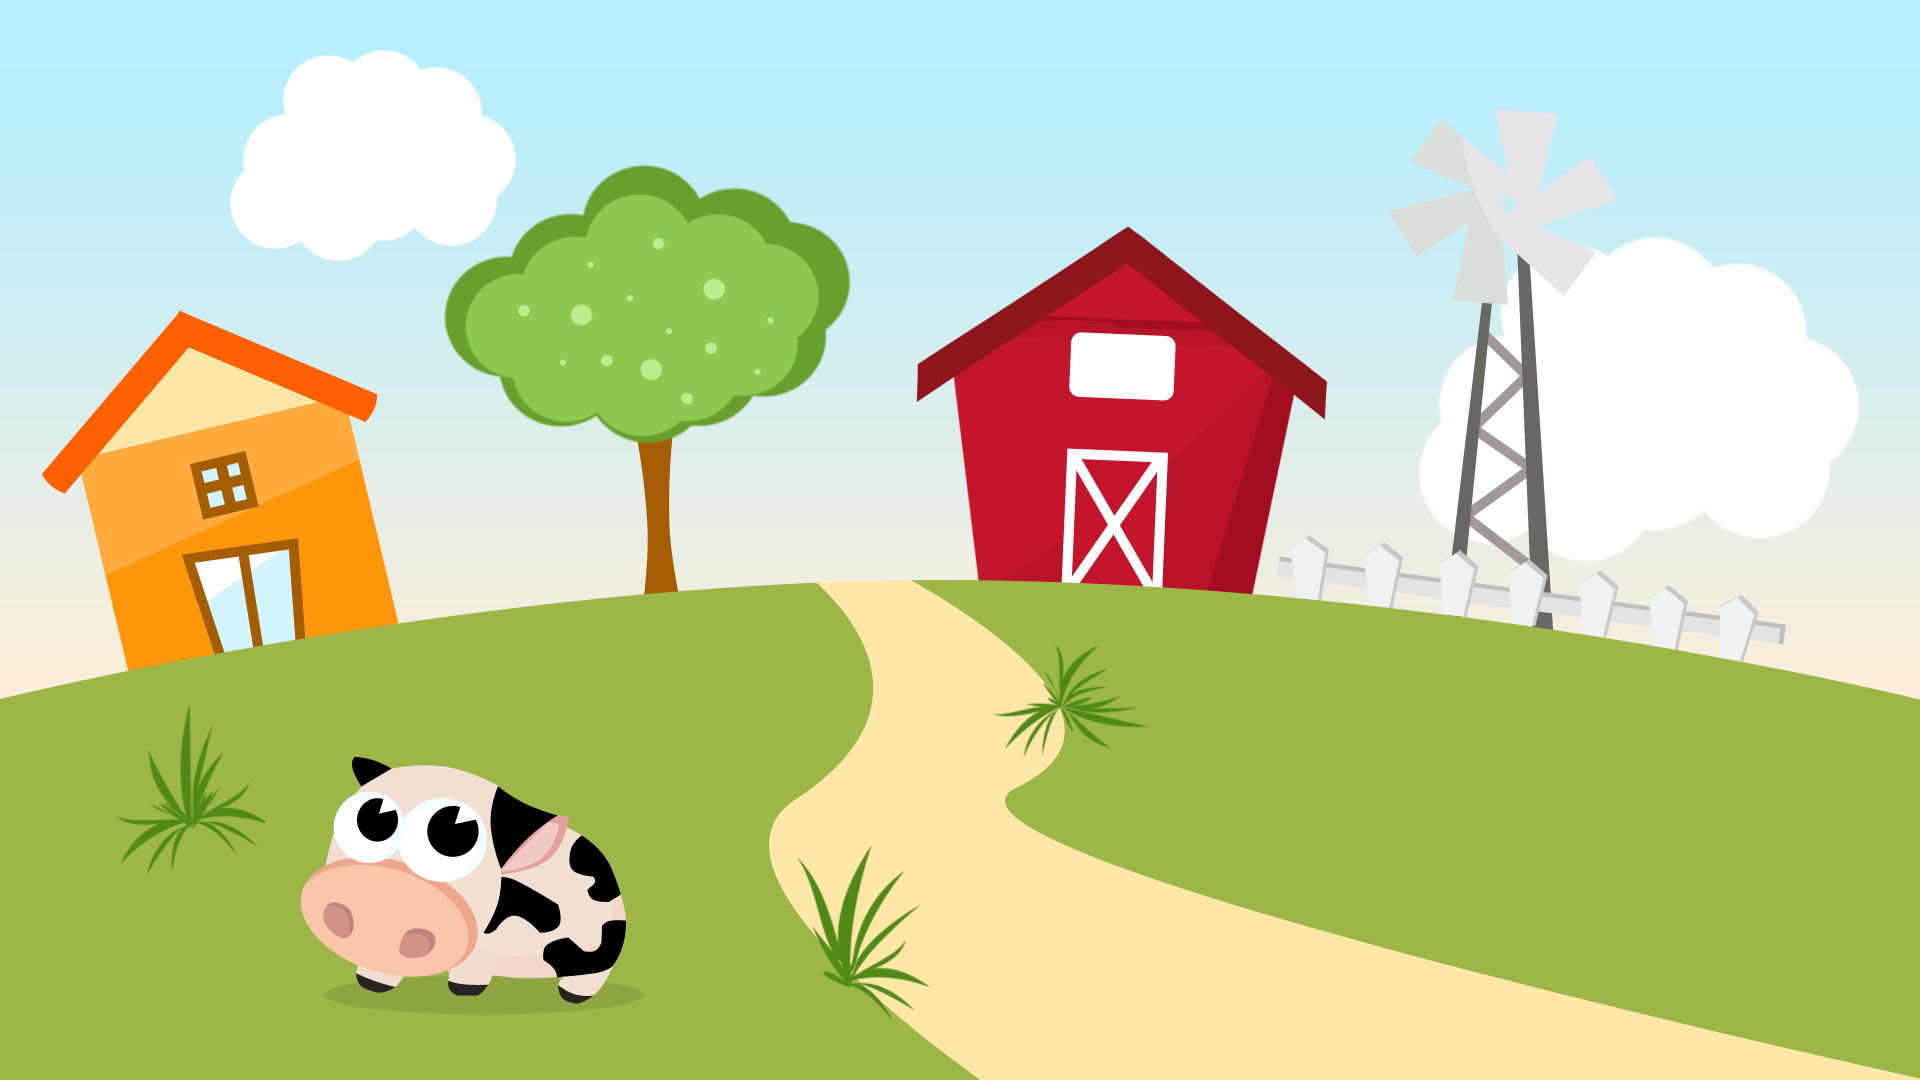 Happy Farm Landscape by Henry-Design on DeviantArt